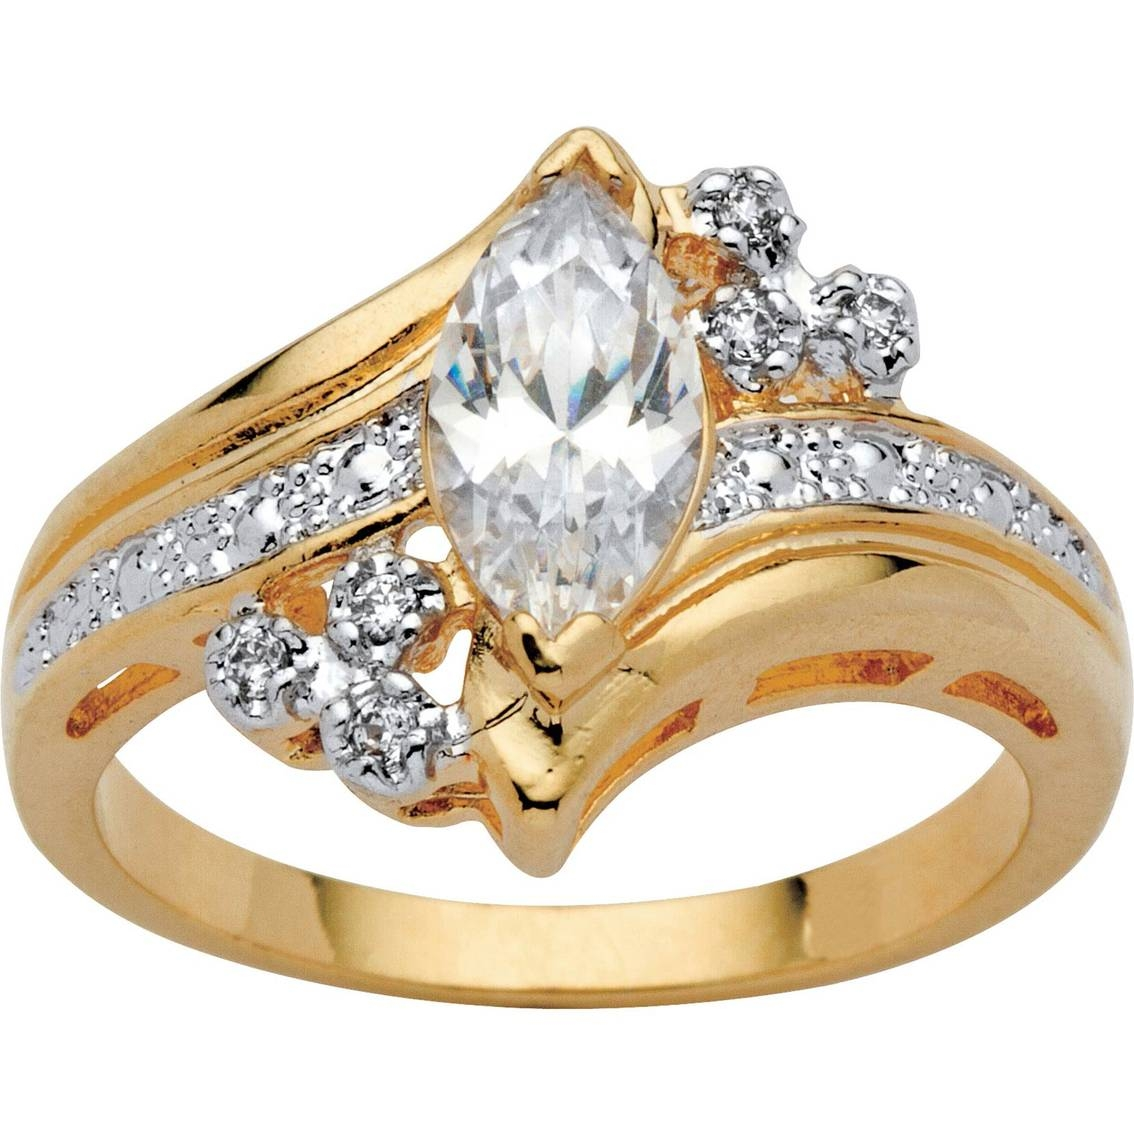 Palmbeach 14K Yellow Gold Plated Marquise Cut Cubic Zirconia With Regard To Most Popular Yellow Gold Anniversary Rings (Gallery 15 of 25)